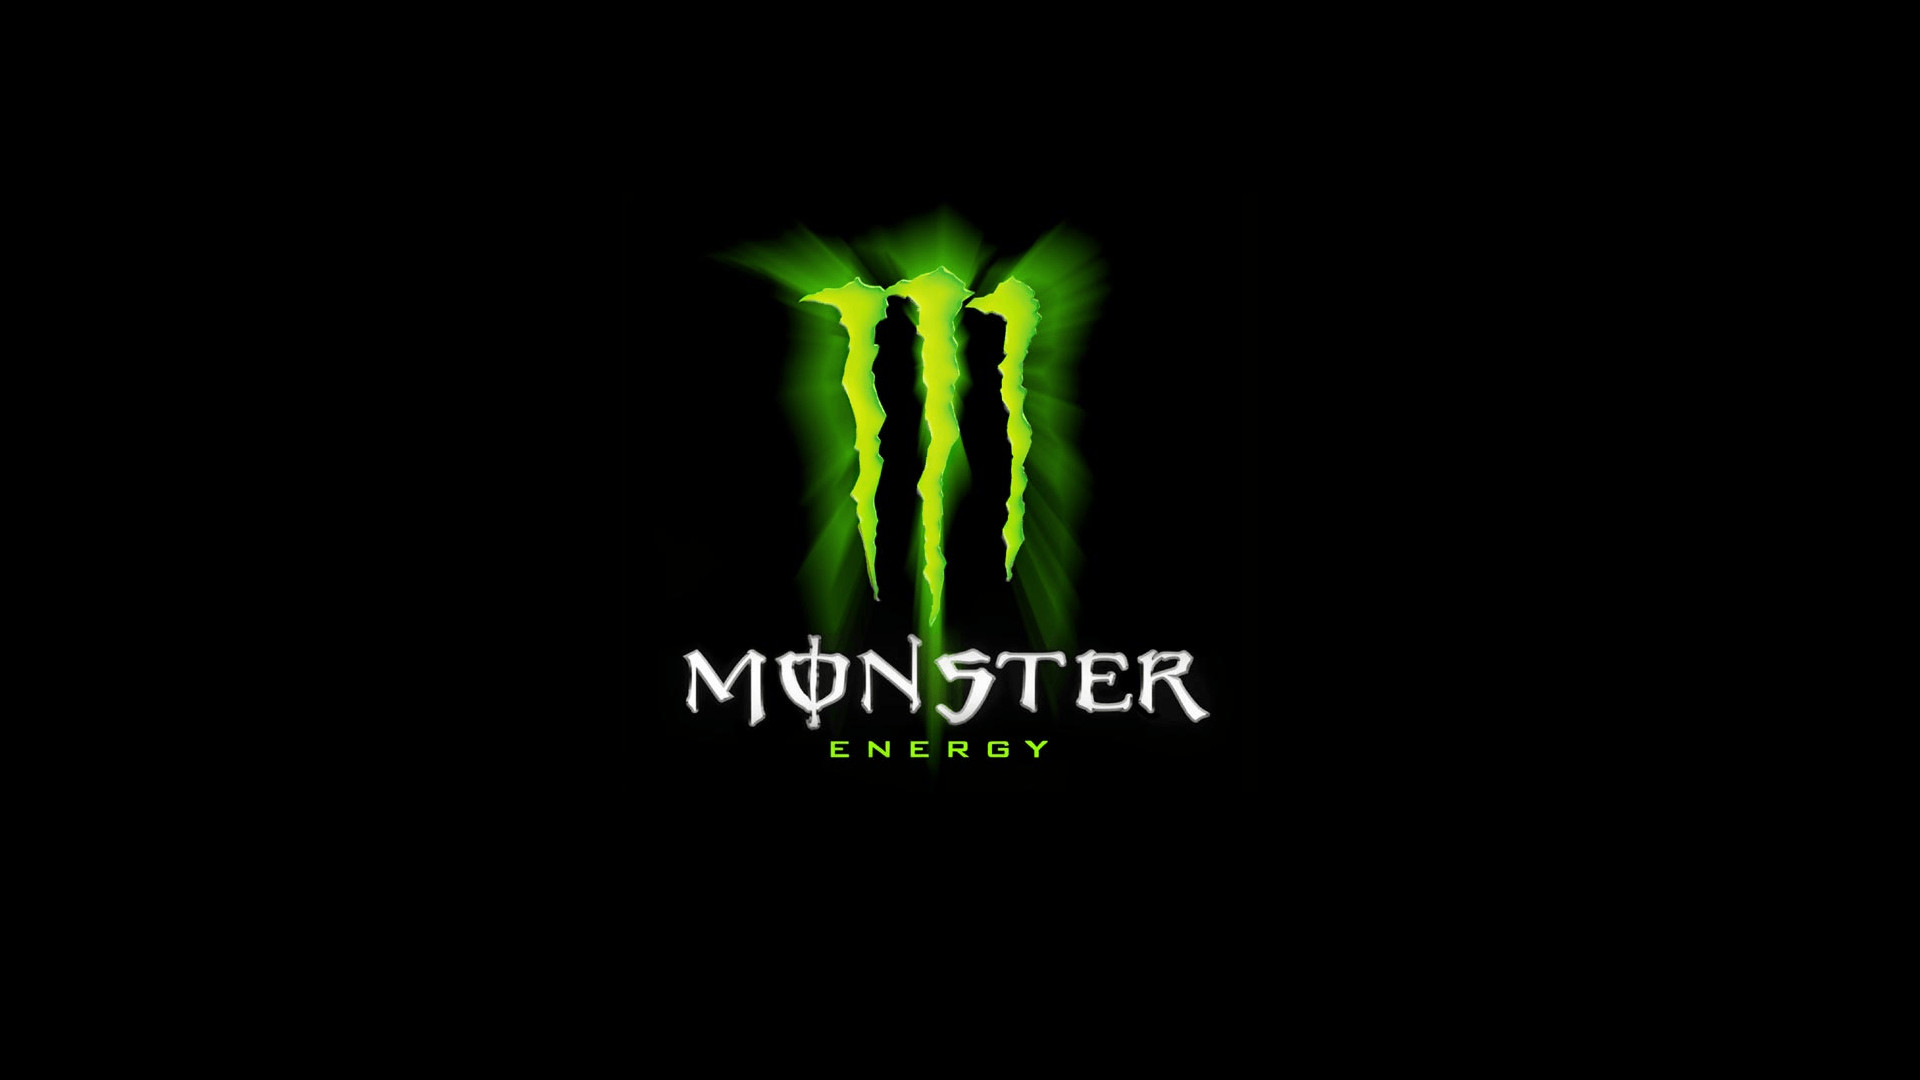 Exceptional 1920x1080 Monster Energy Logo Wallpapers   Wallpaper Cave